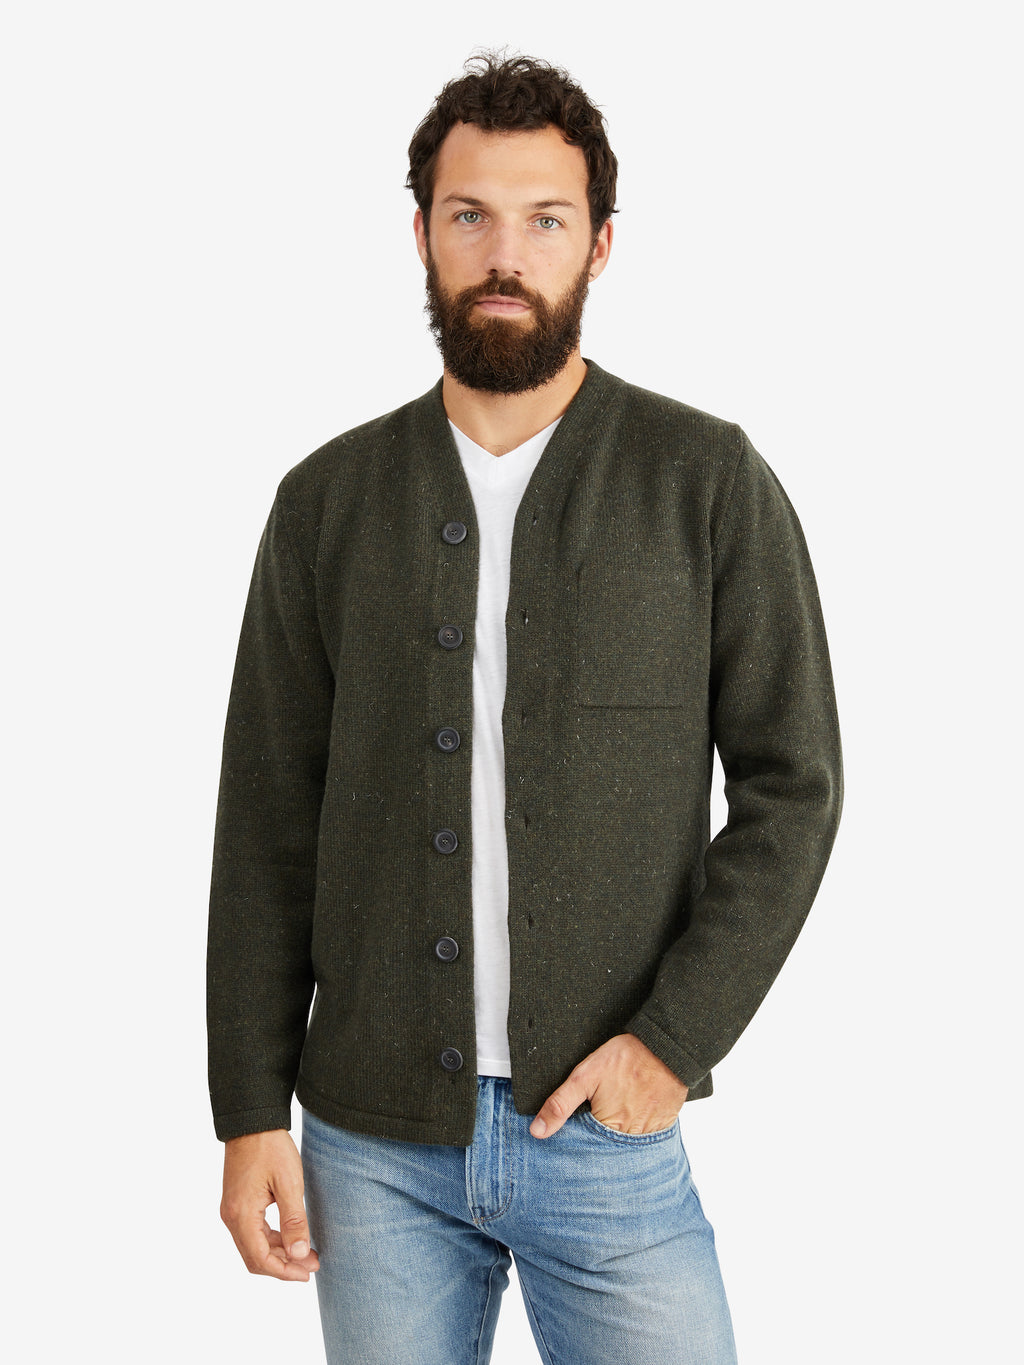 Inis Meain High V Wool Jacket